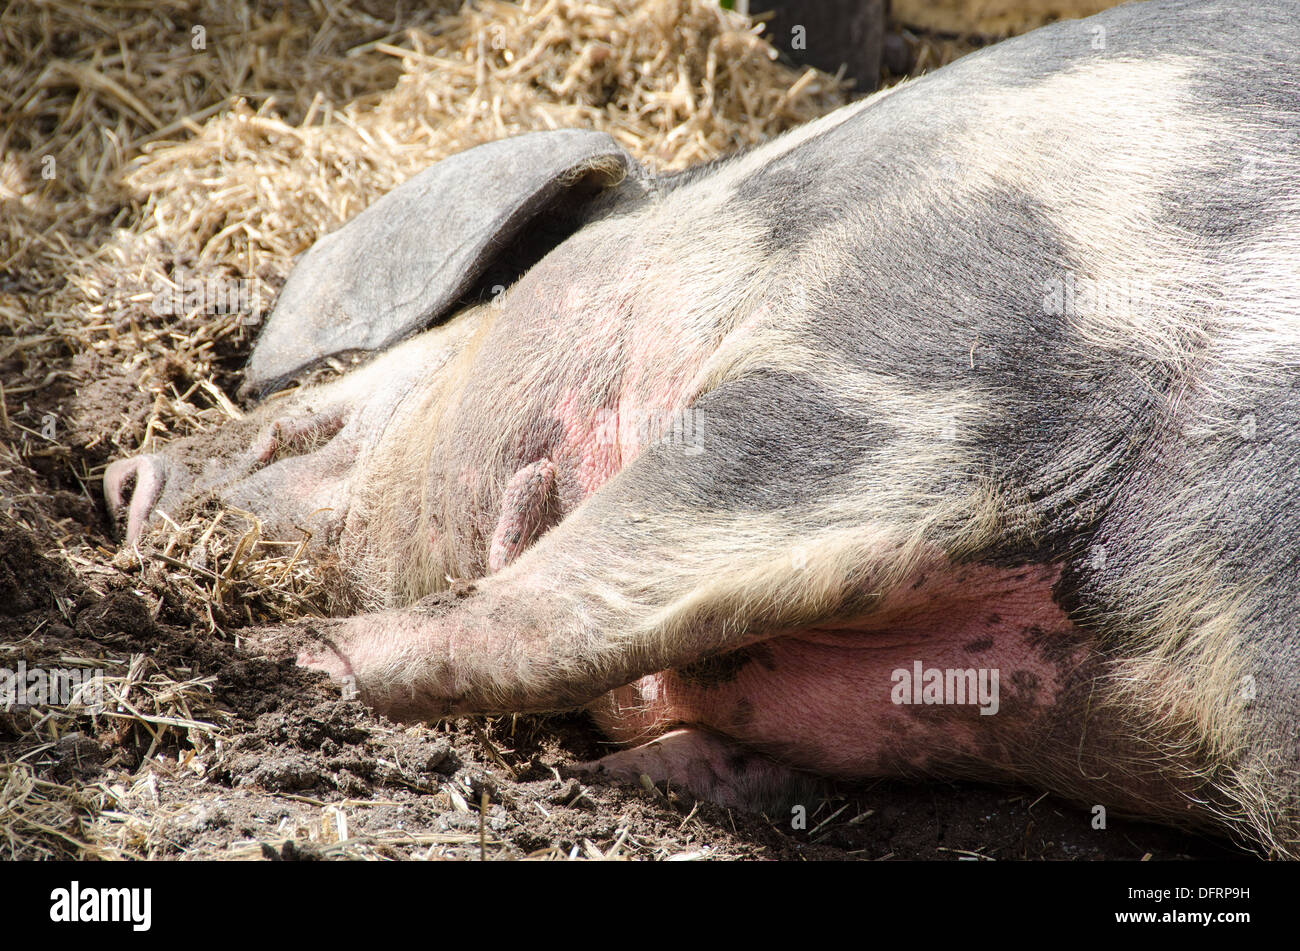 Head of a pig sleeping on the ground in mud - Stock Image